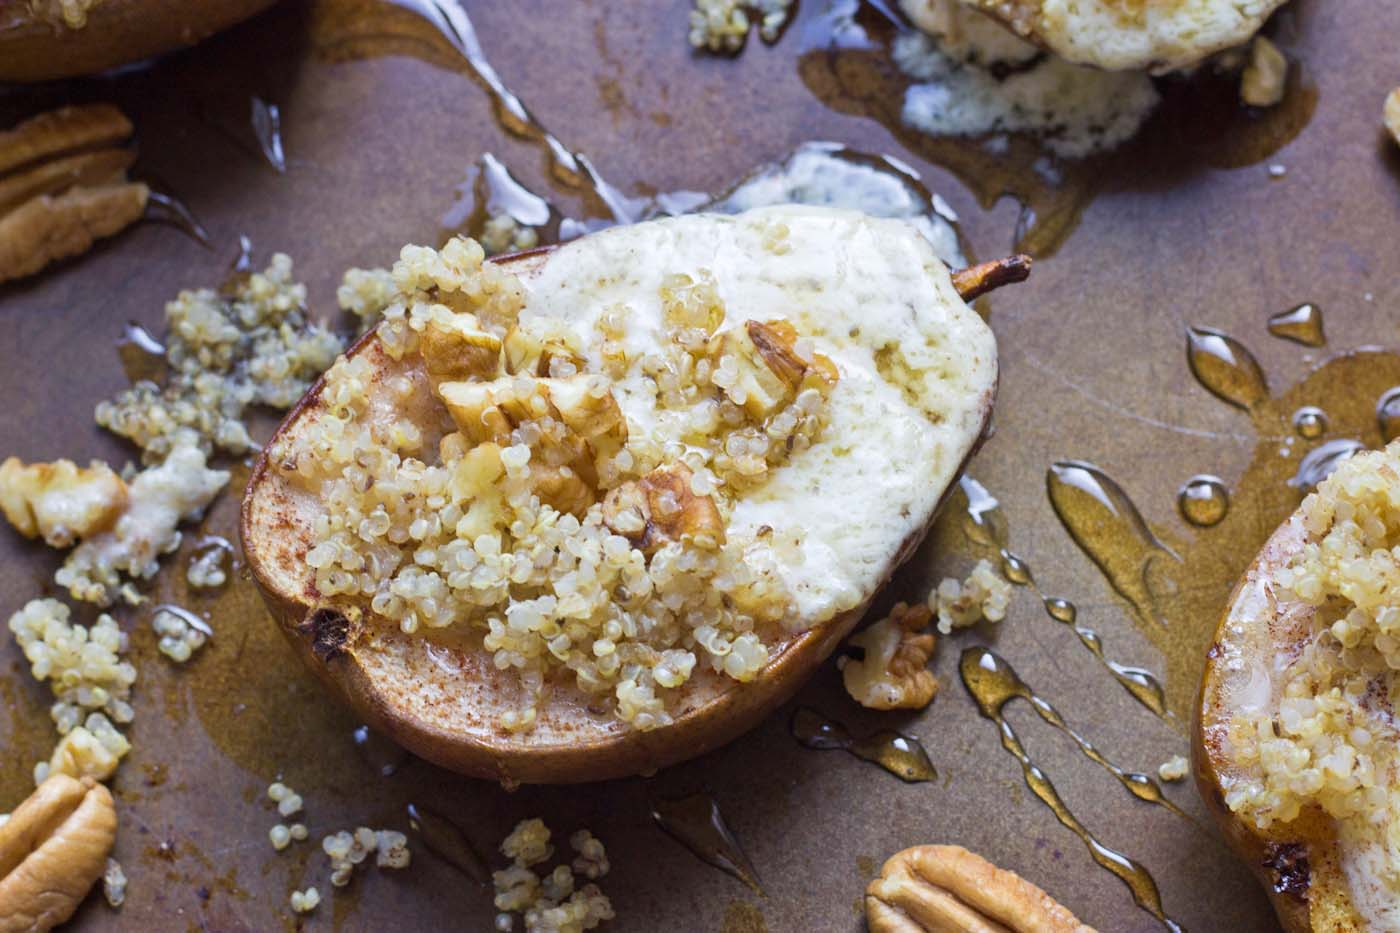 Roasted Quinoa Stuffed Pears are exactly what I want to eat on a cool morning this fall. These pears are stuffed with mascarpone cheese, quinoa, and pecans. So yum!